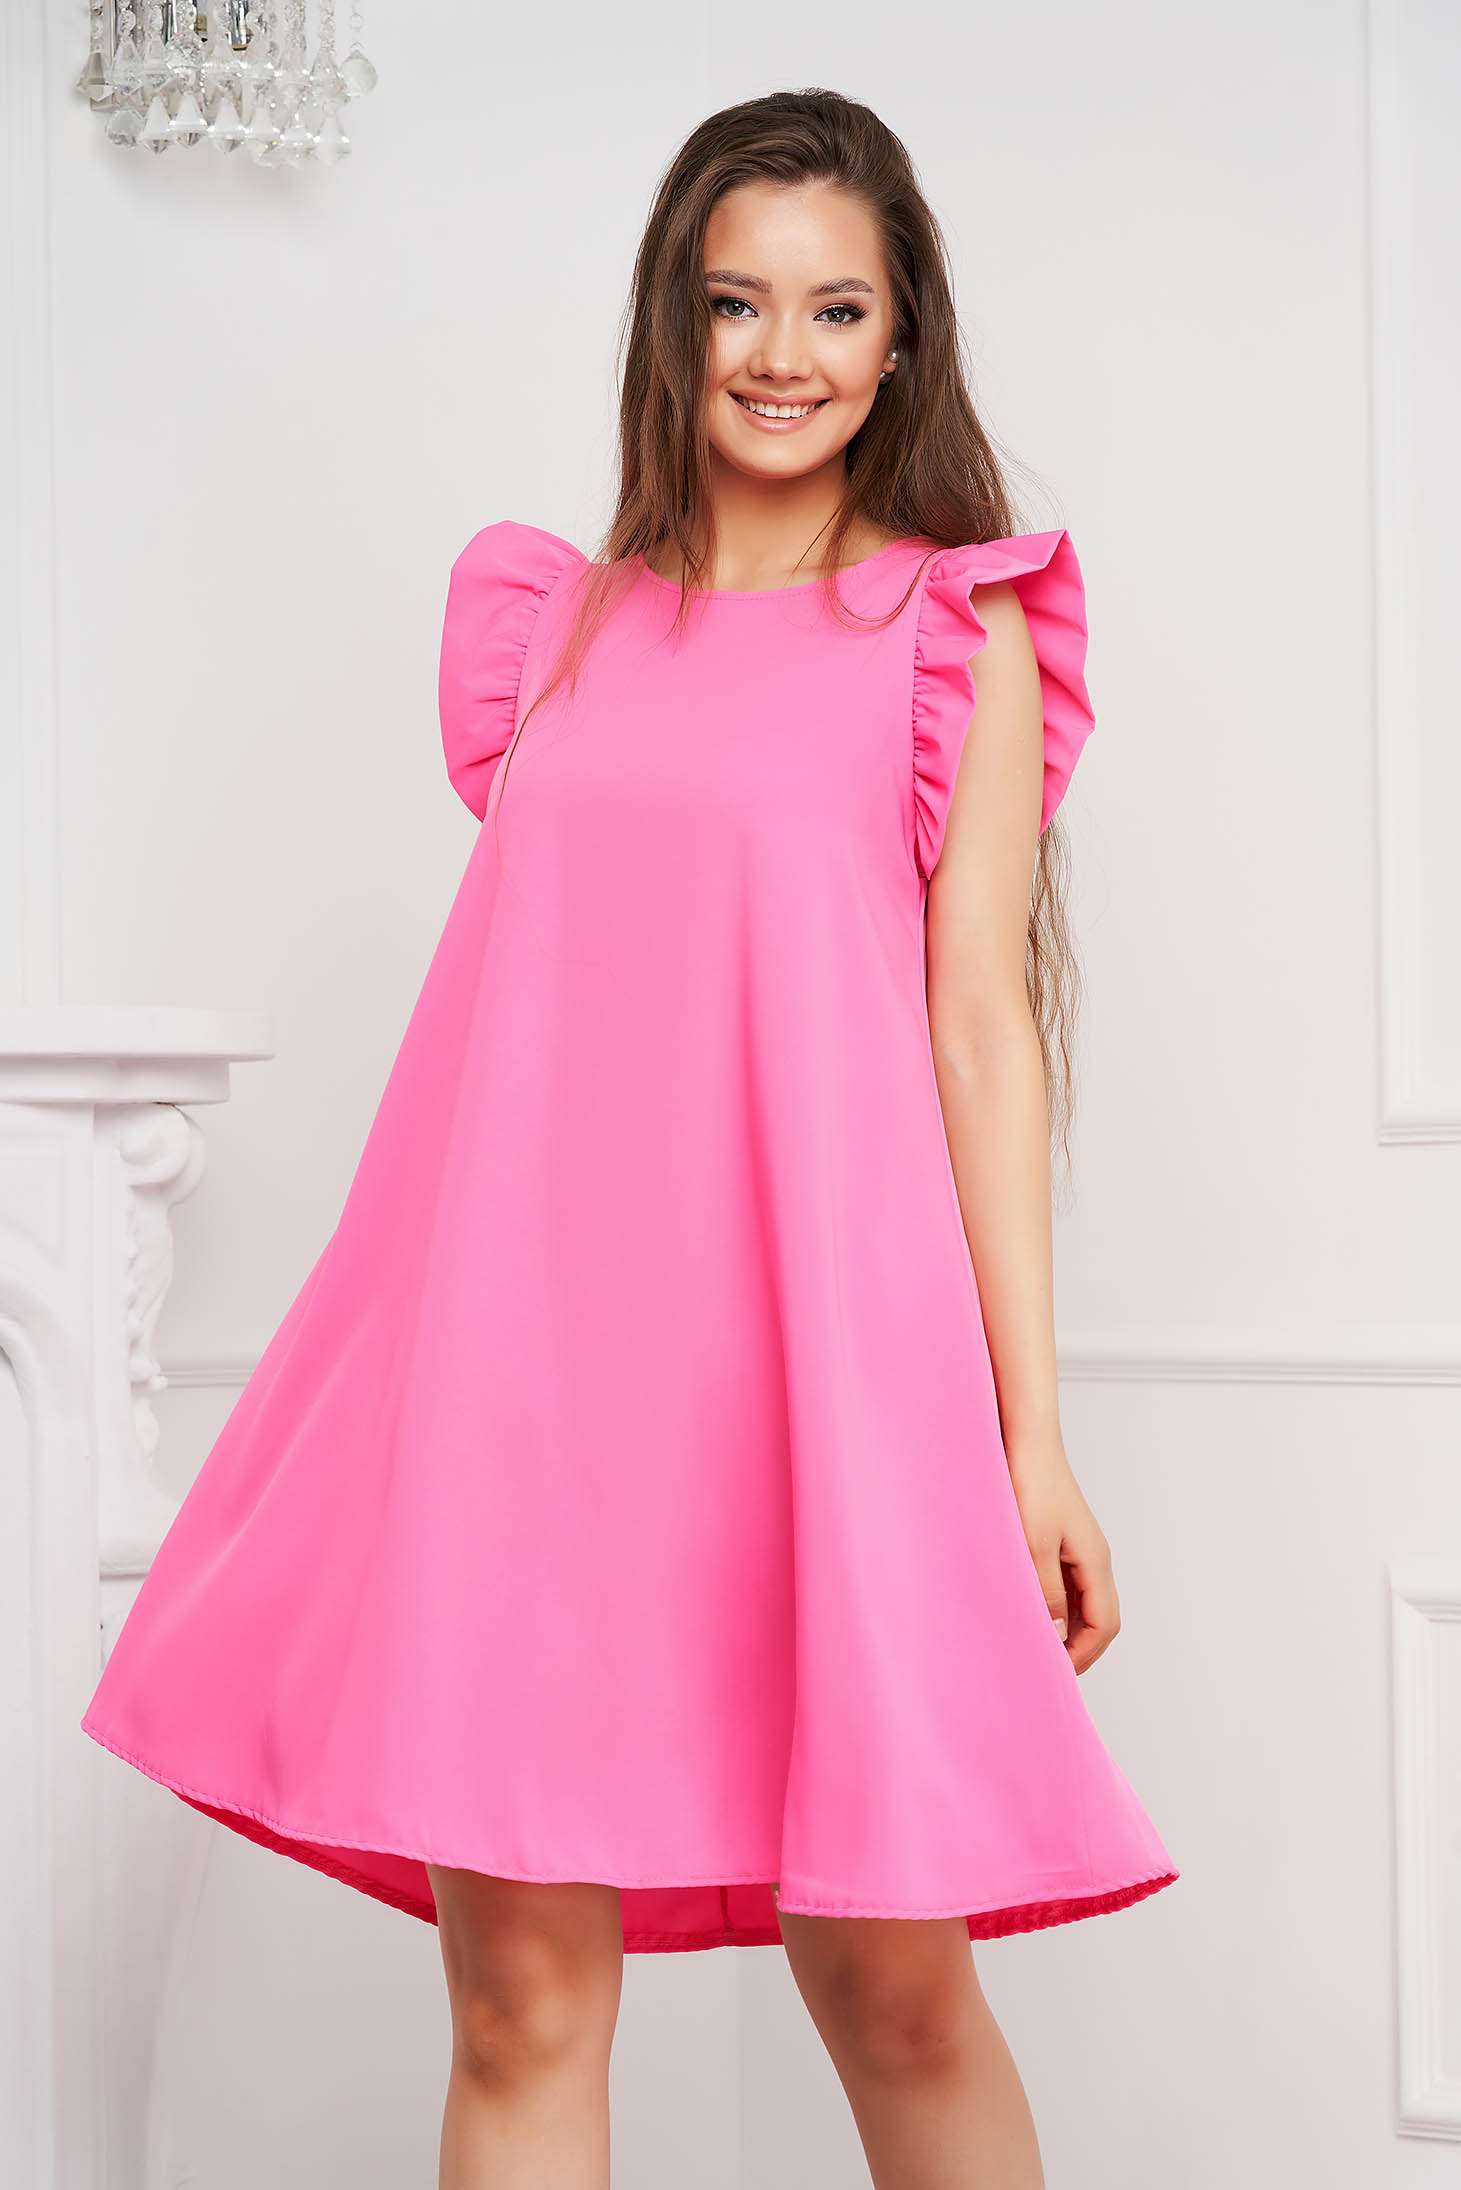 Pink dress short cut loose fit short sleeves with ruffle details